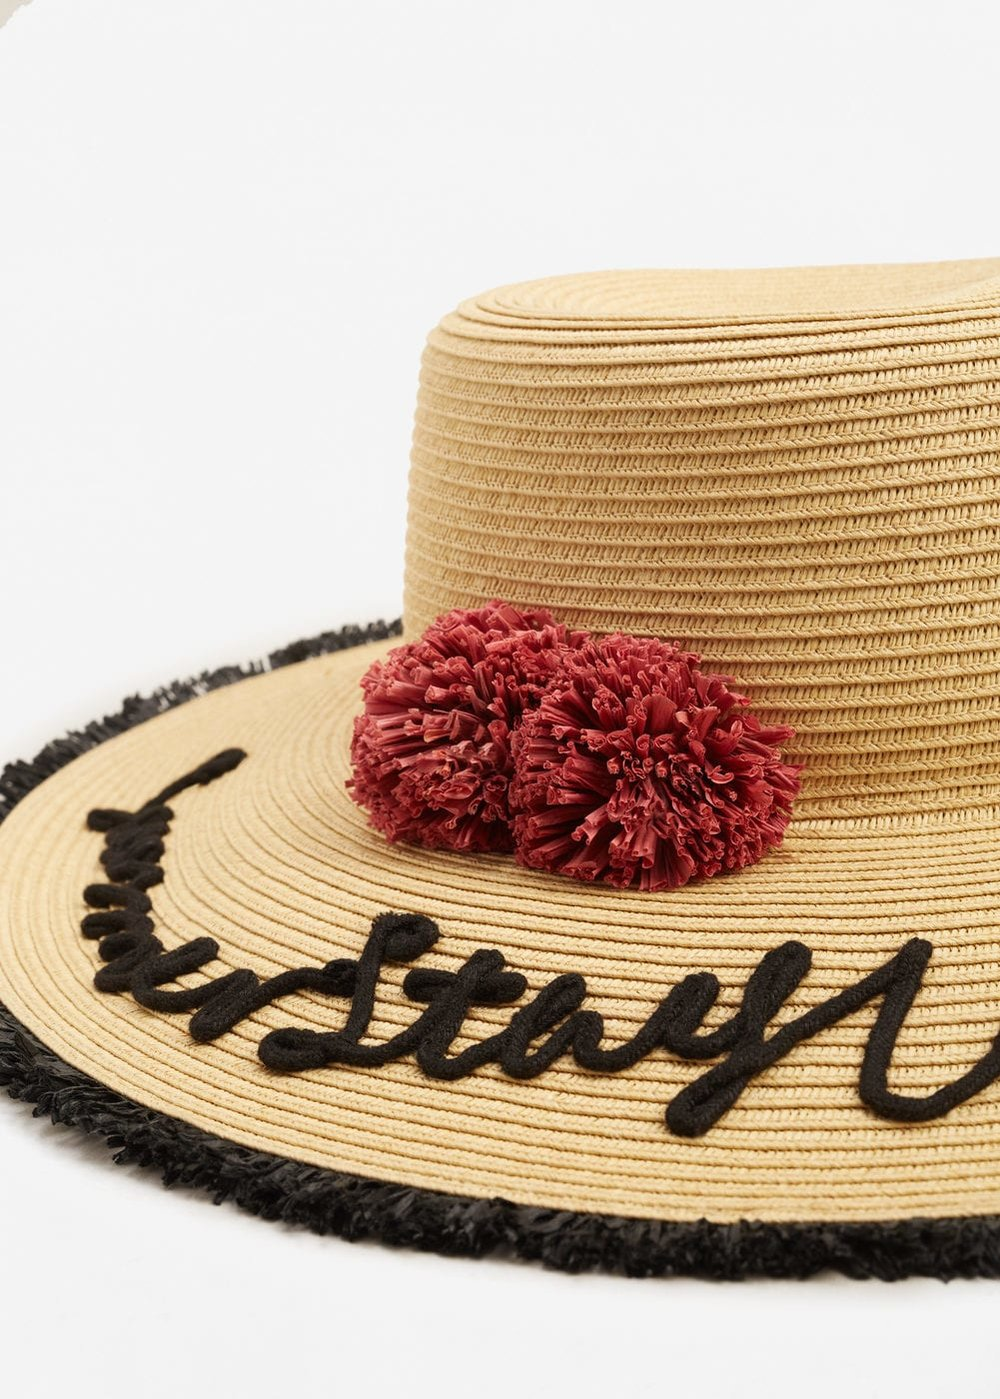 THE STRAW HAT  Straw Pamela Hat from Mango £19.99